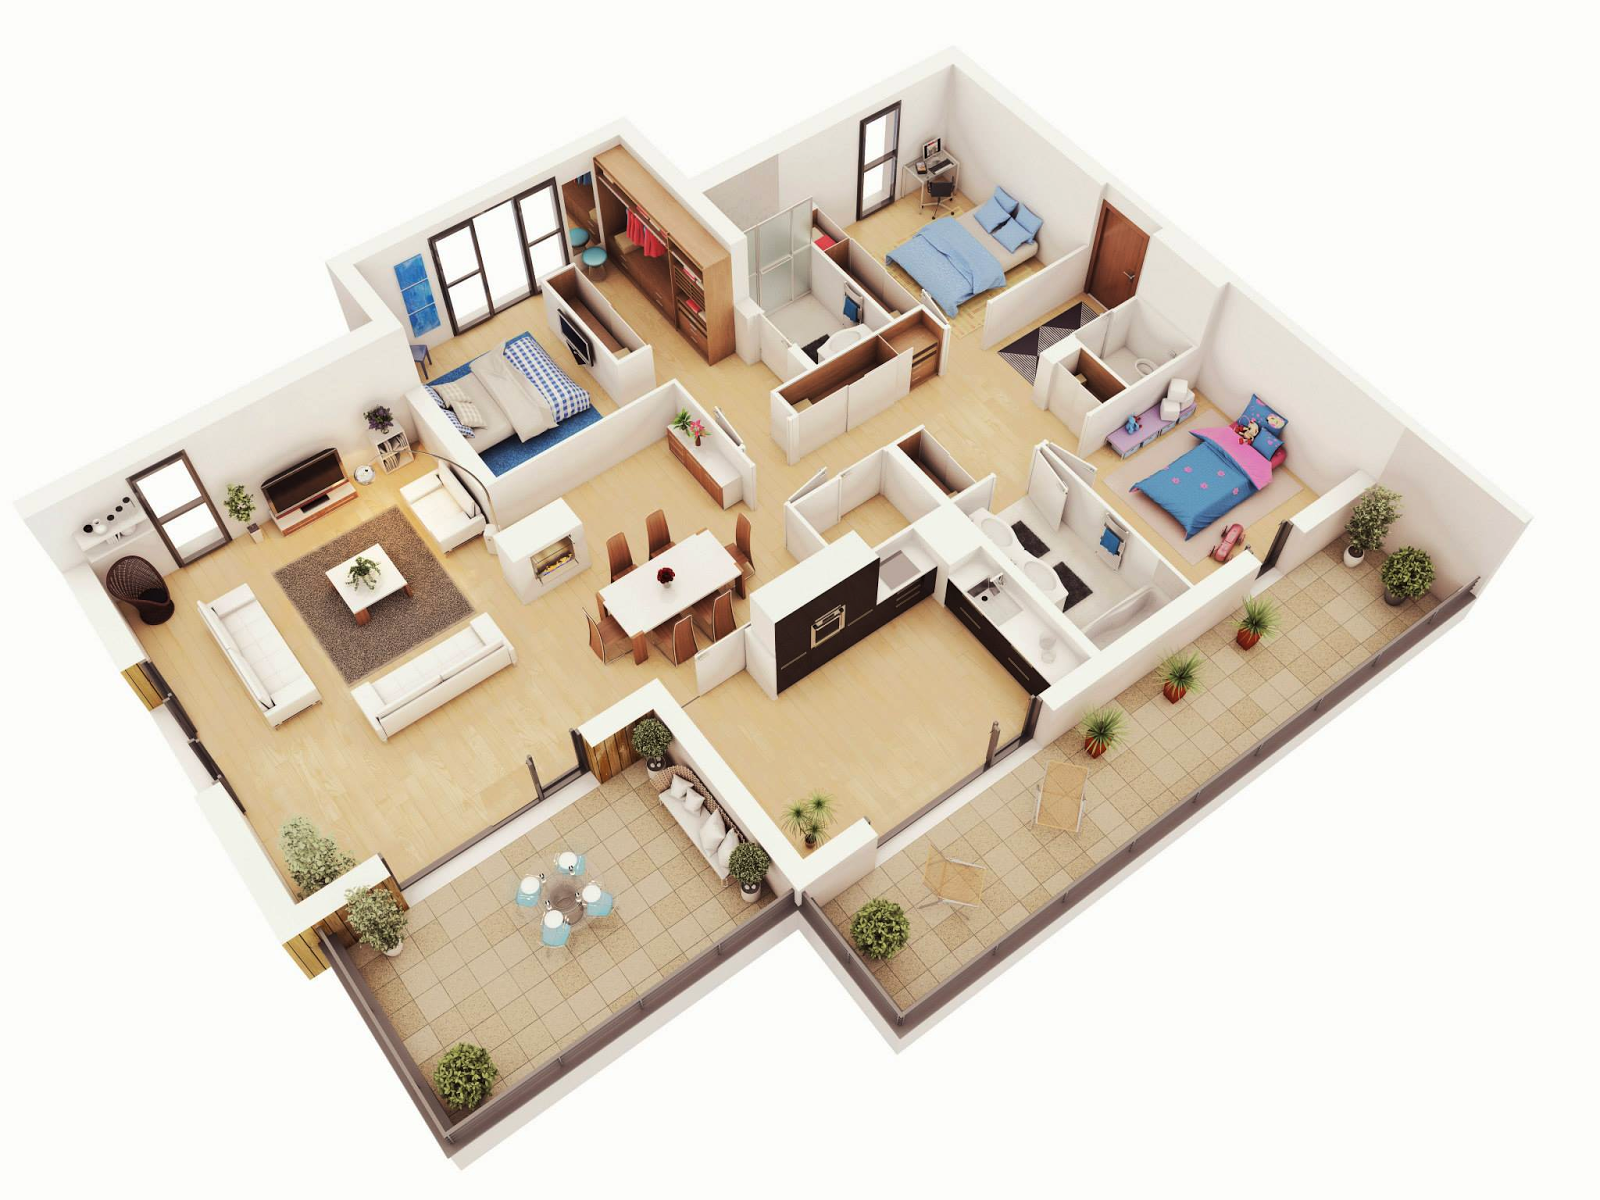 Free 3 bedrooms house design and lay out - House plan design rooms ...